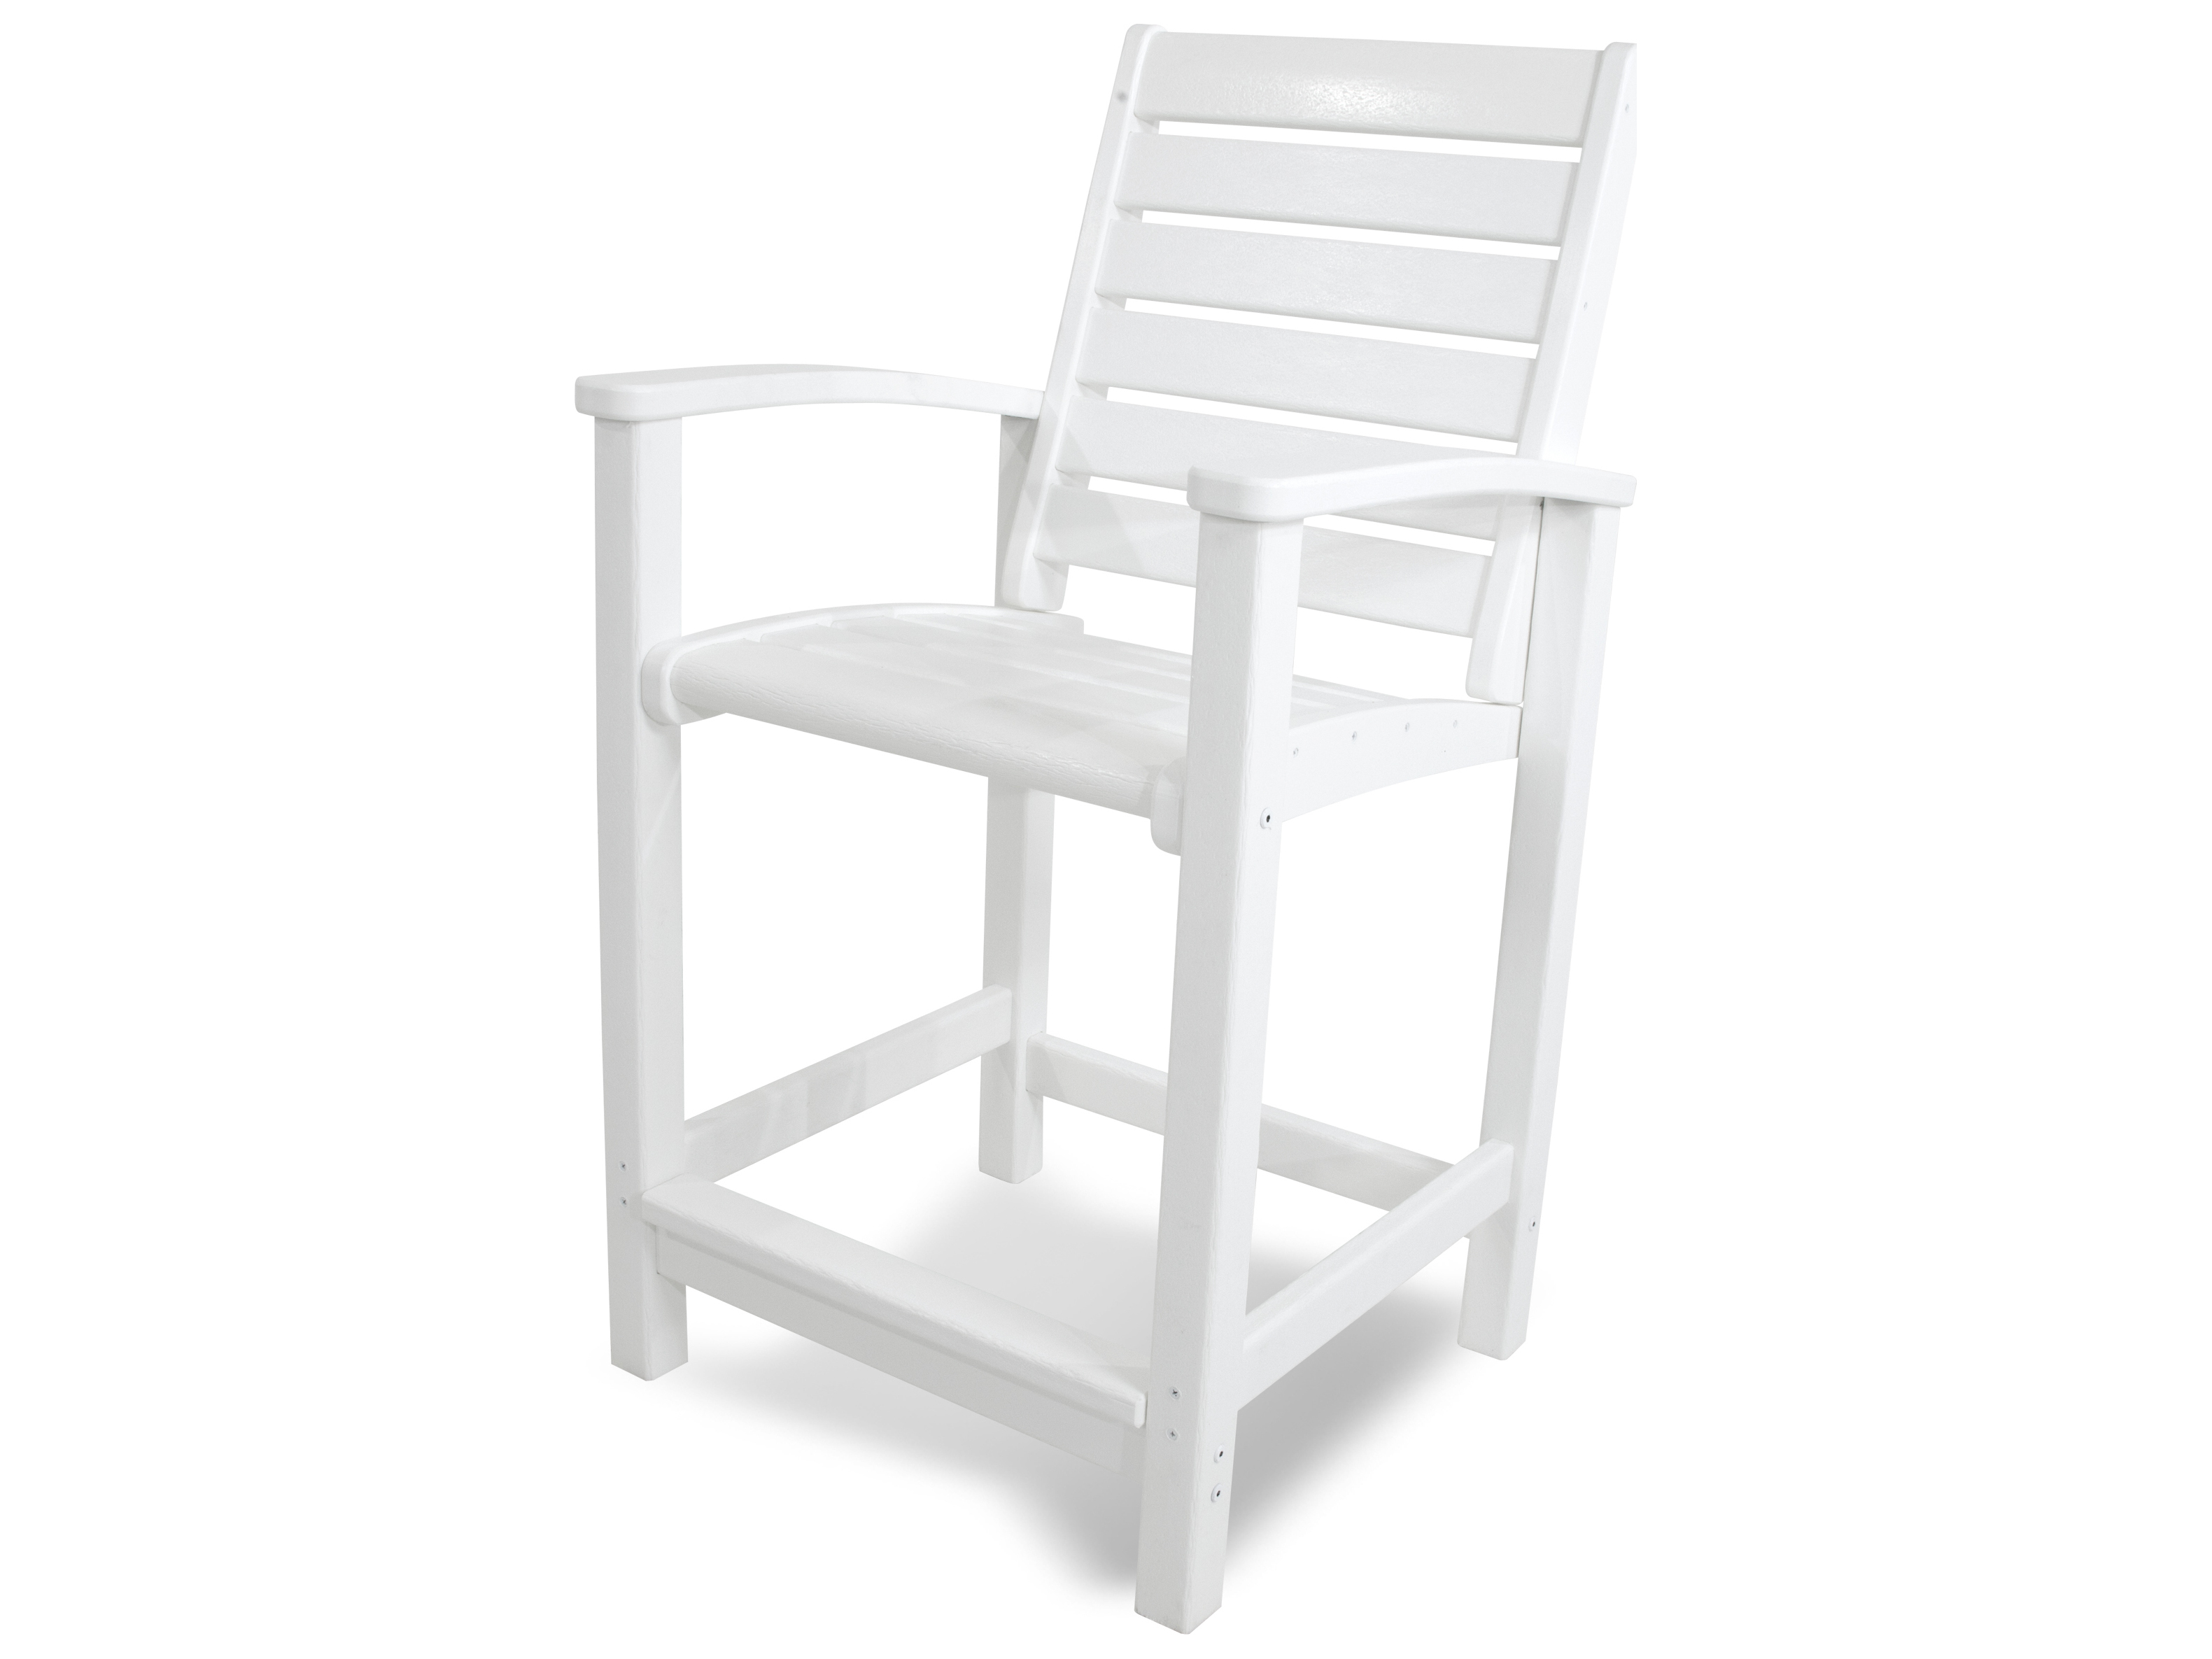 Polywood 174 Signature Recycled Plastic Counter Chair Pw1911